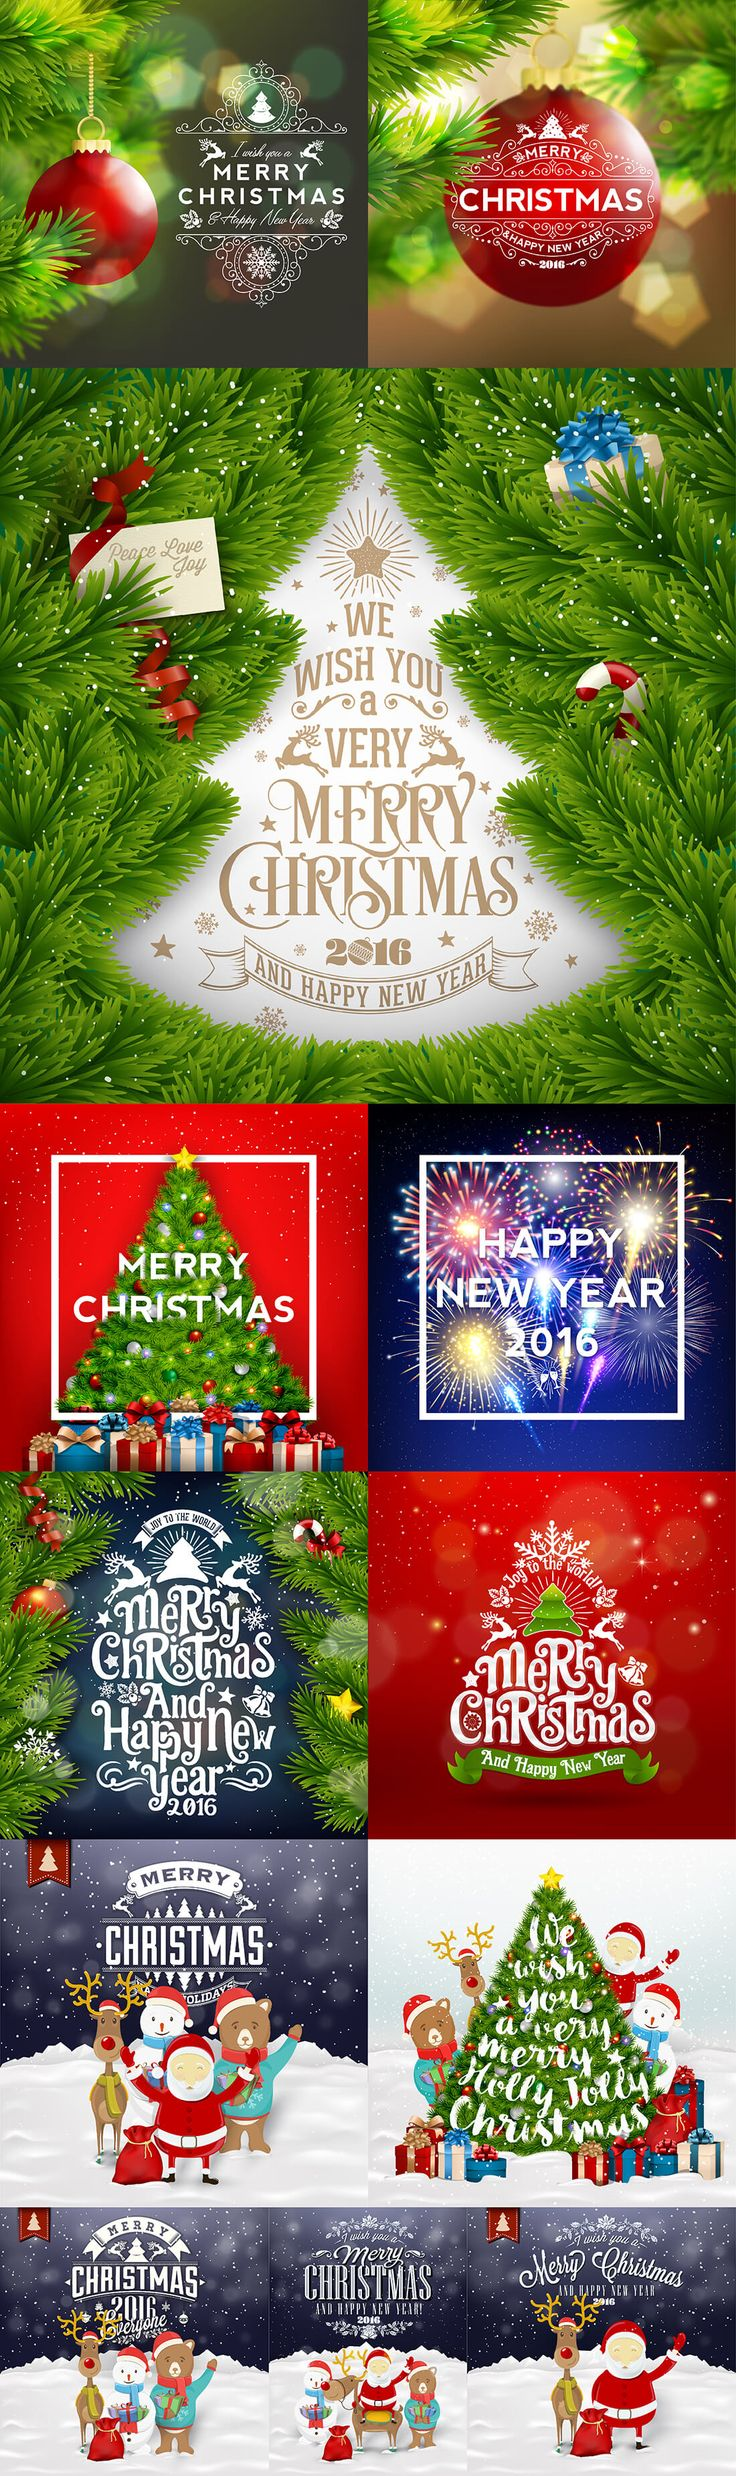 100+ Premium Christmas and New Year Vectors - only $15! - MightyDeals